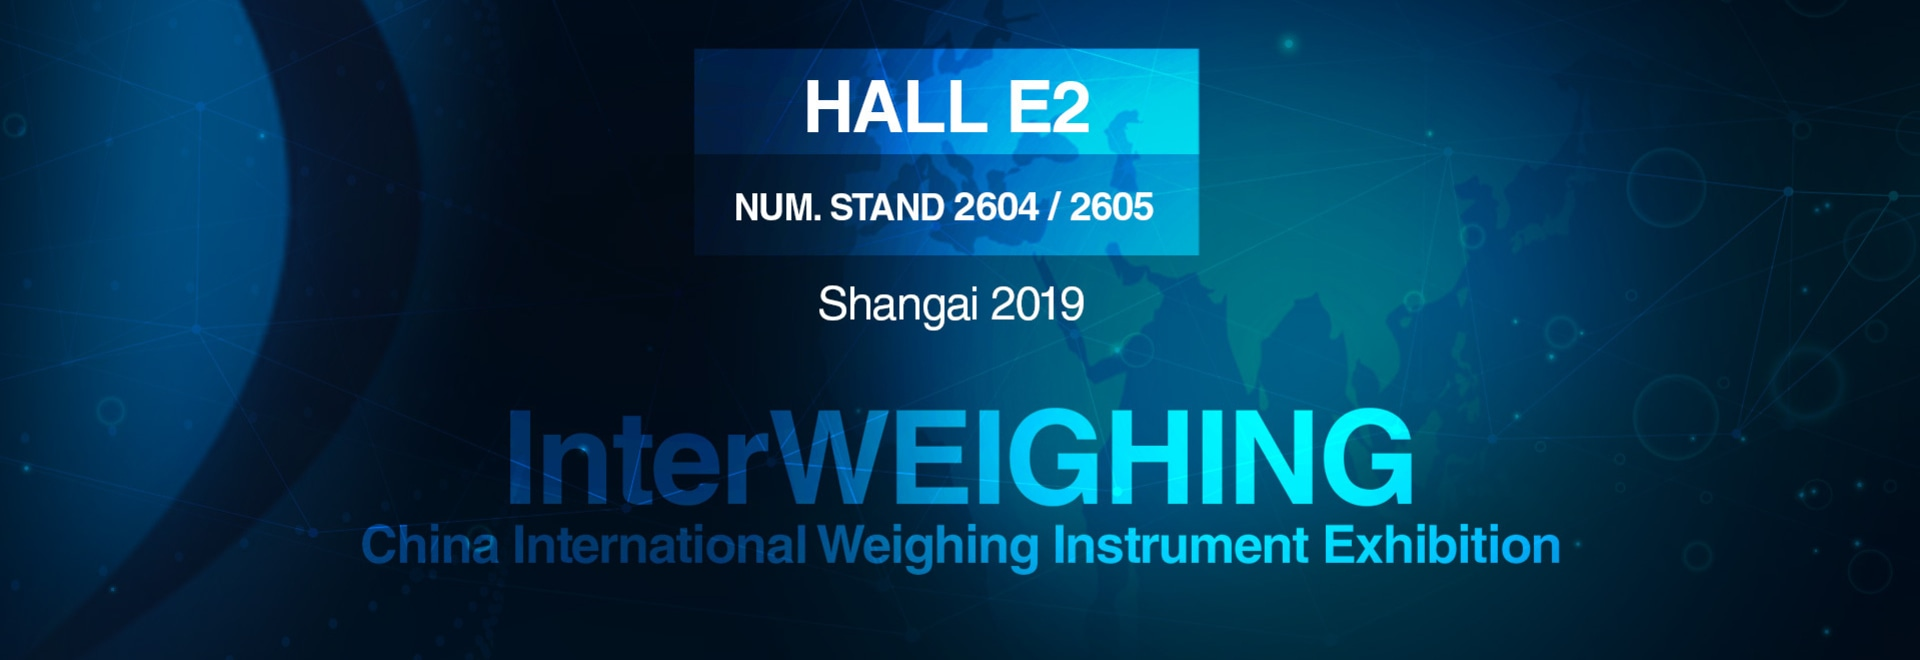 Giropès will be taking part in the Interweighing in Shanghai